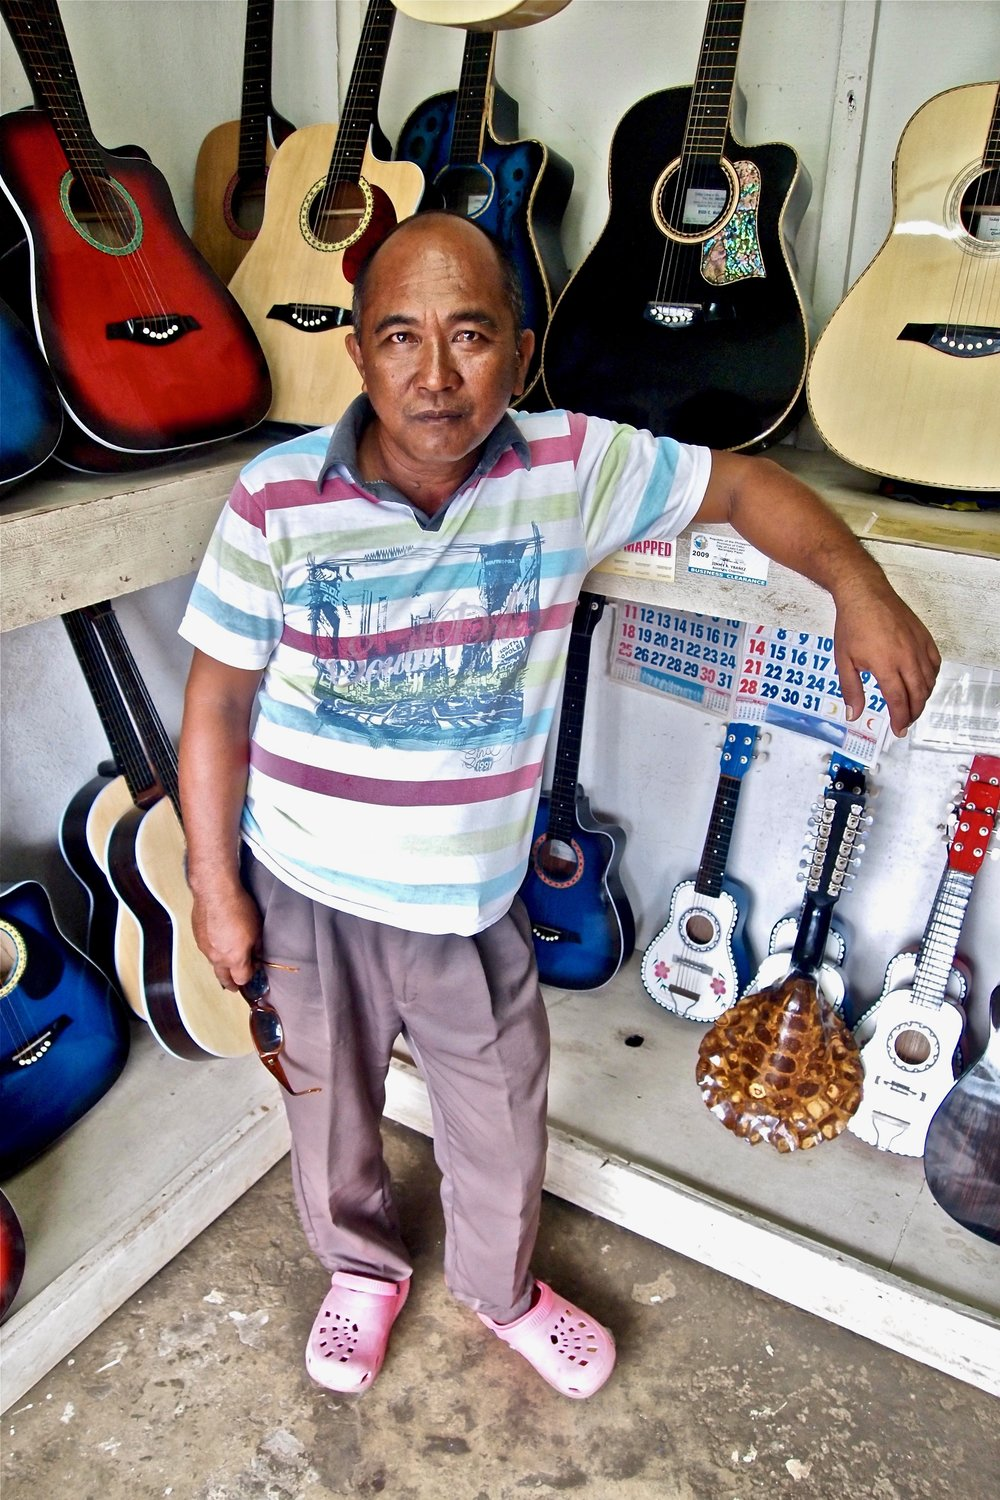 Ike Biloy in his guitar shop in Lapu-Lapu City. His eldest daughter sends money home from Japan, where she works in a bakery. (C) Remko Tanis